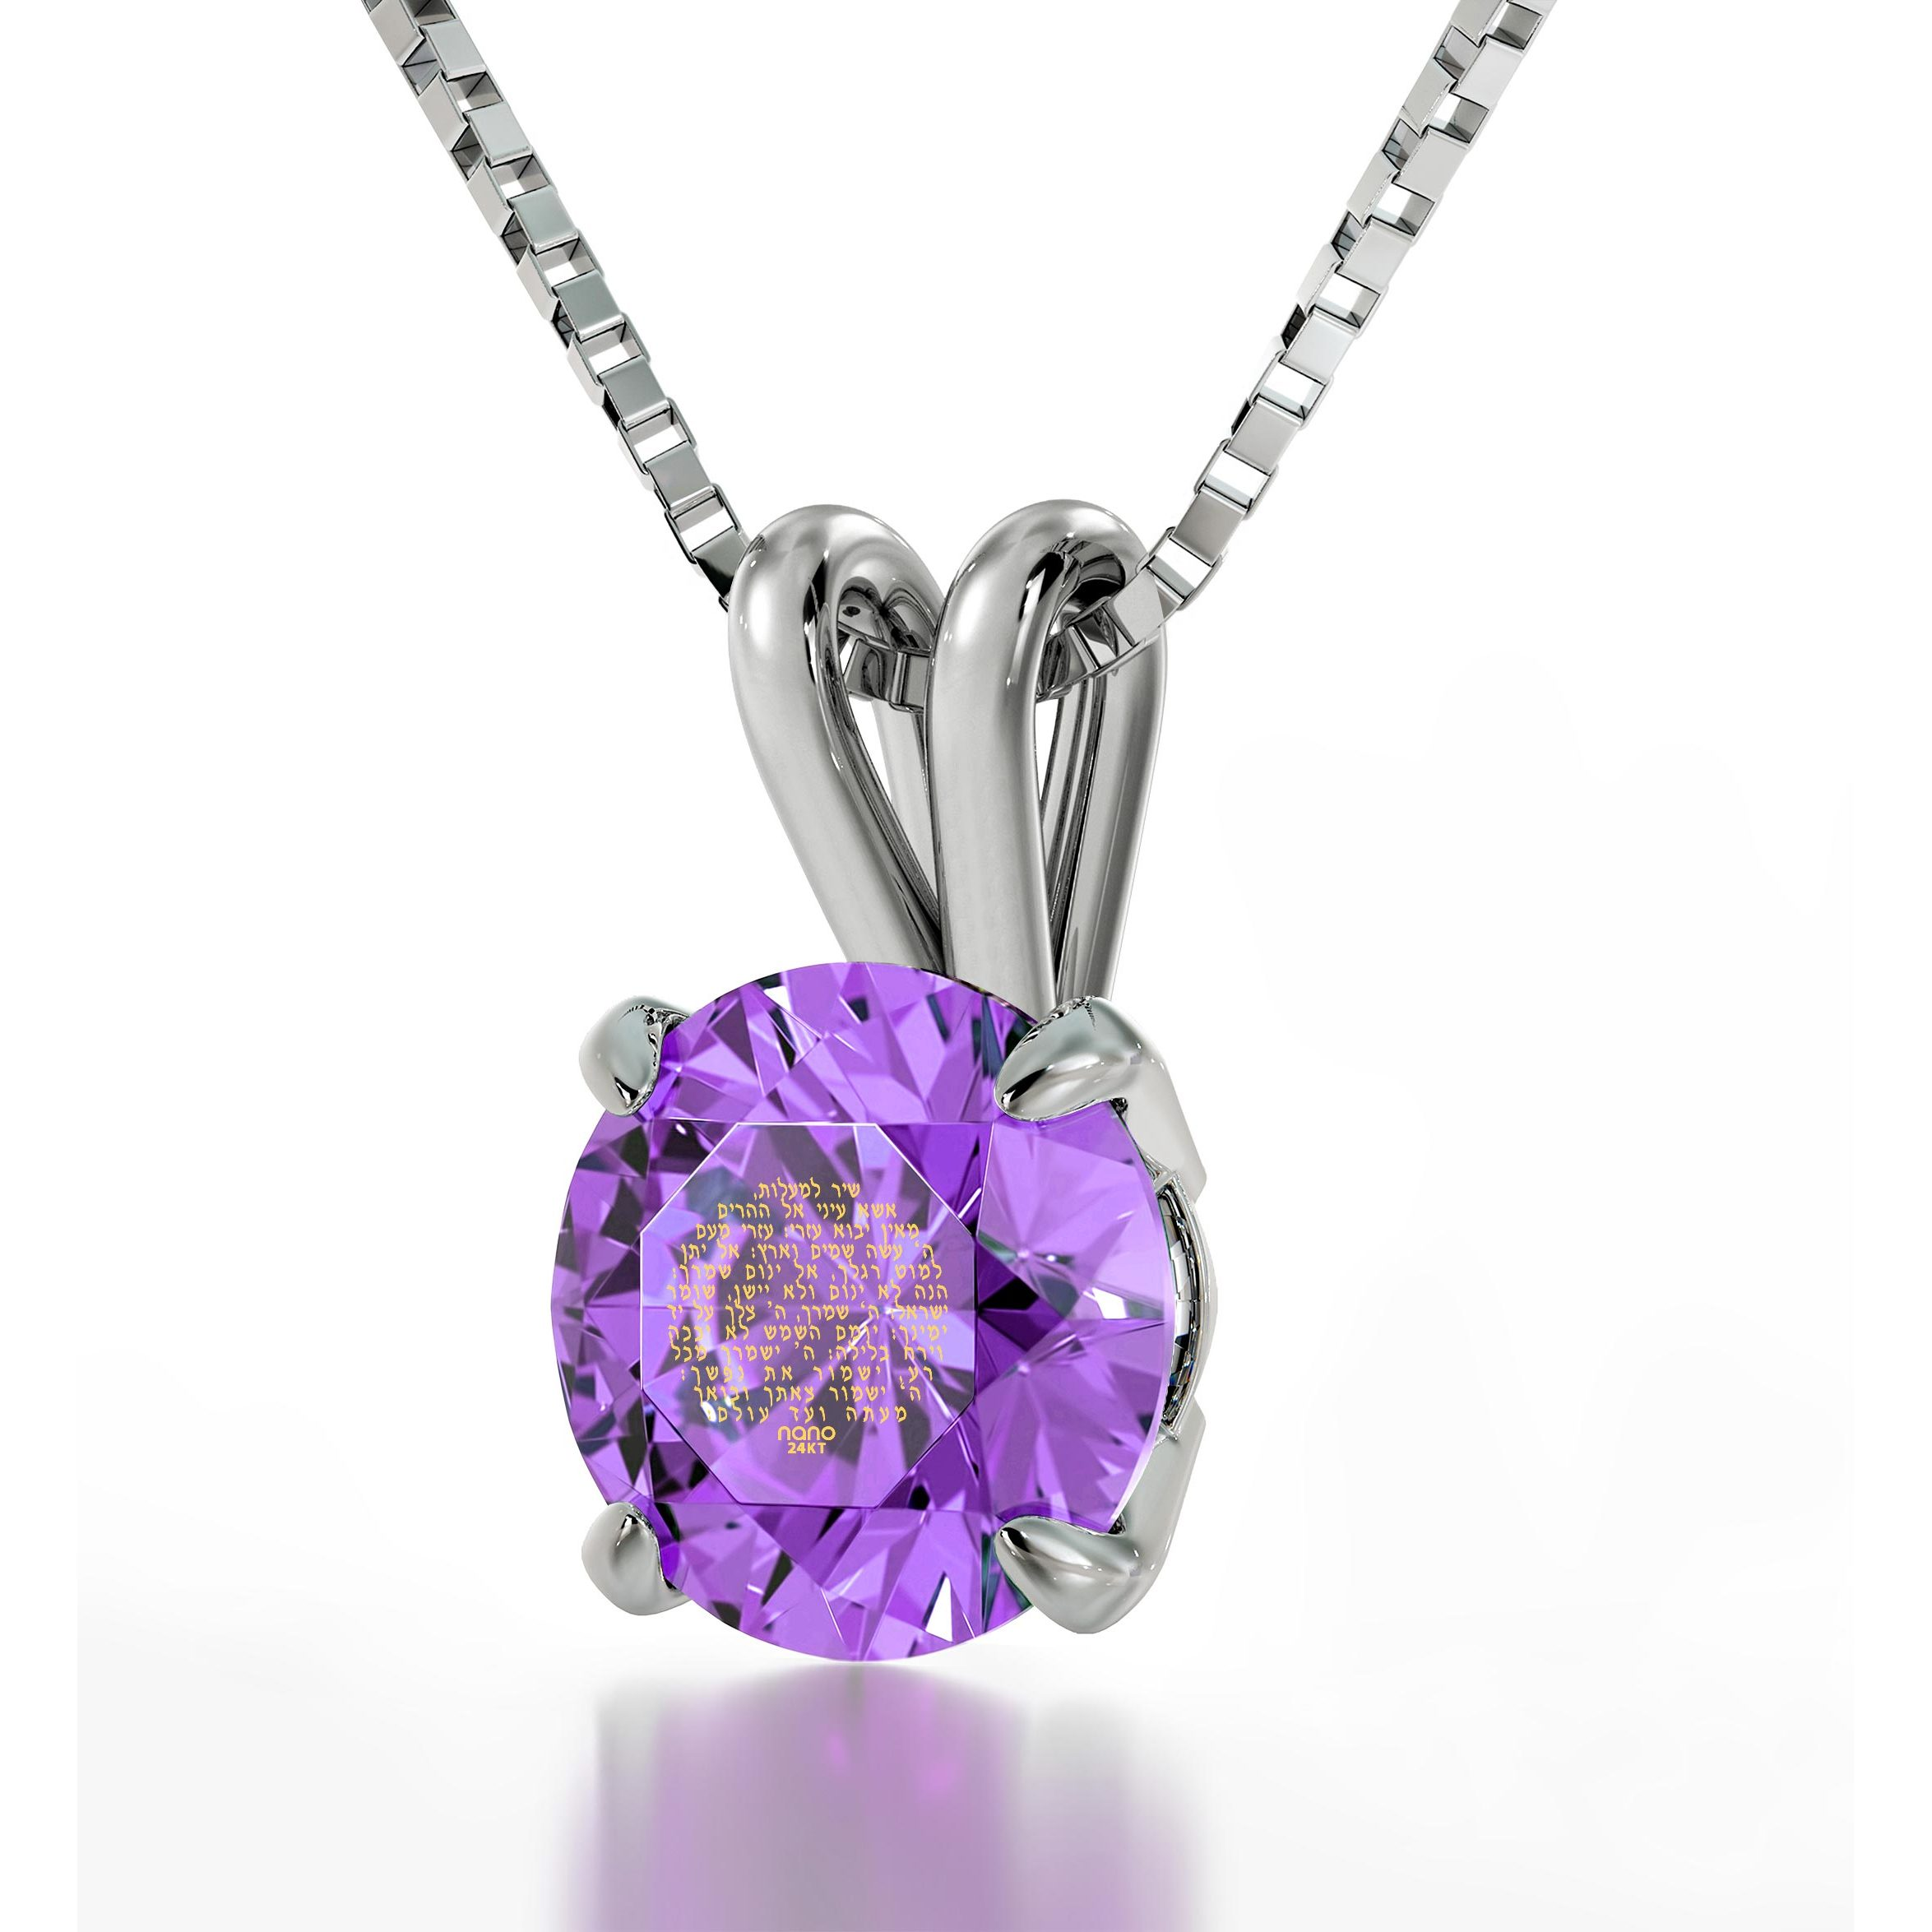 crystal swarovski pendant rose with plated gold product stones raindrop sterling blue narlino oval necklace silver